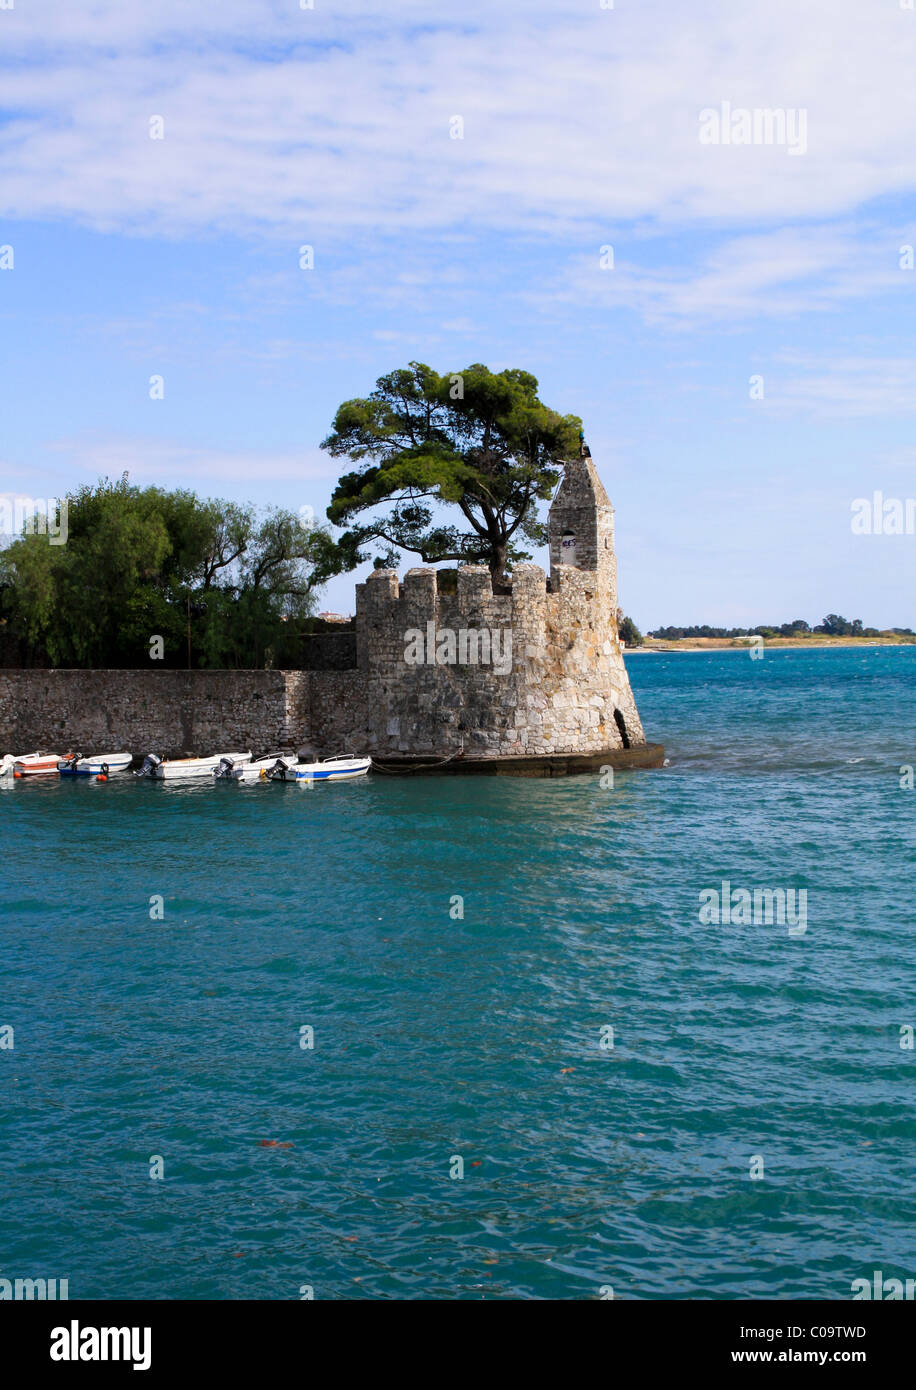 Venetian fortifications at the port of Nafpaktos, Aetolia-Acarnania, West Greece - Stock Image